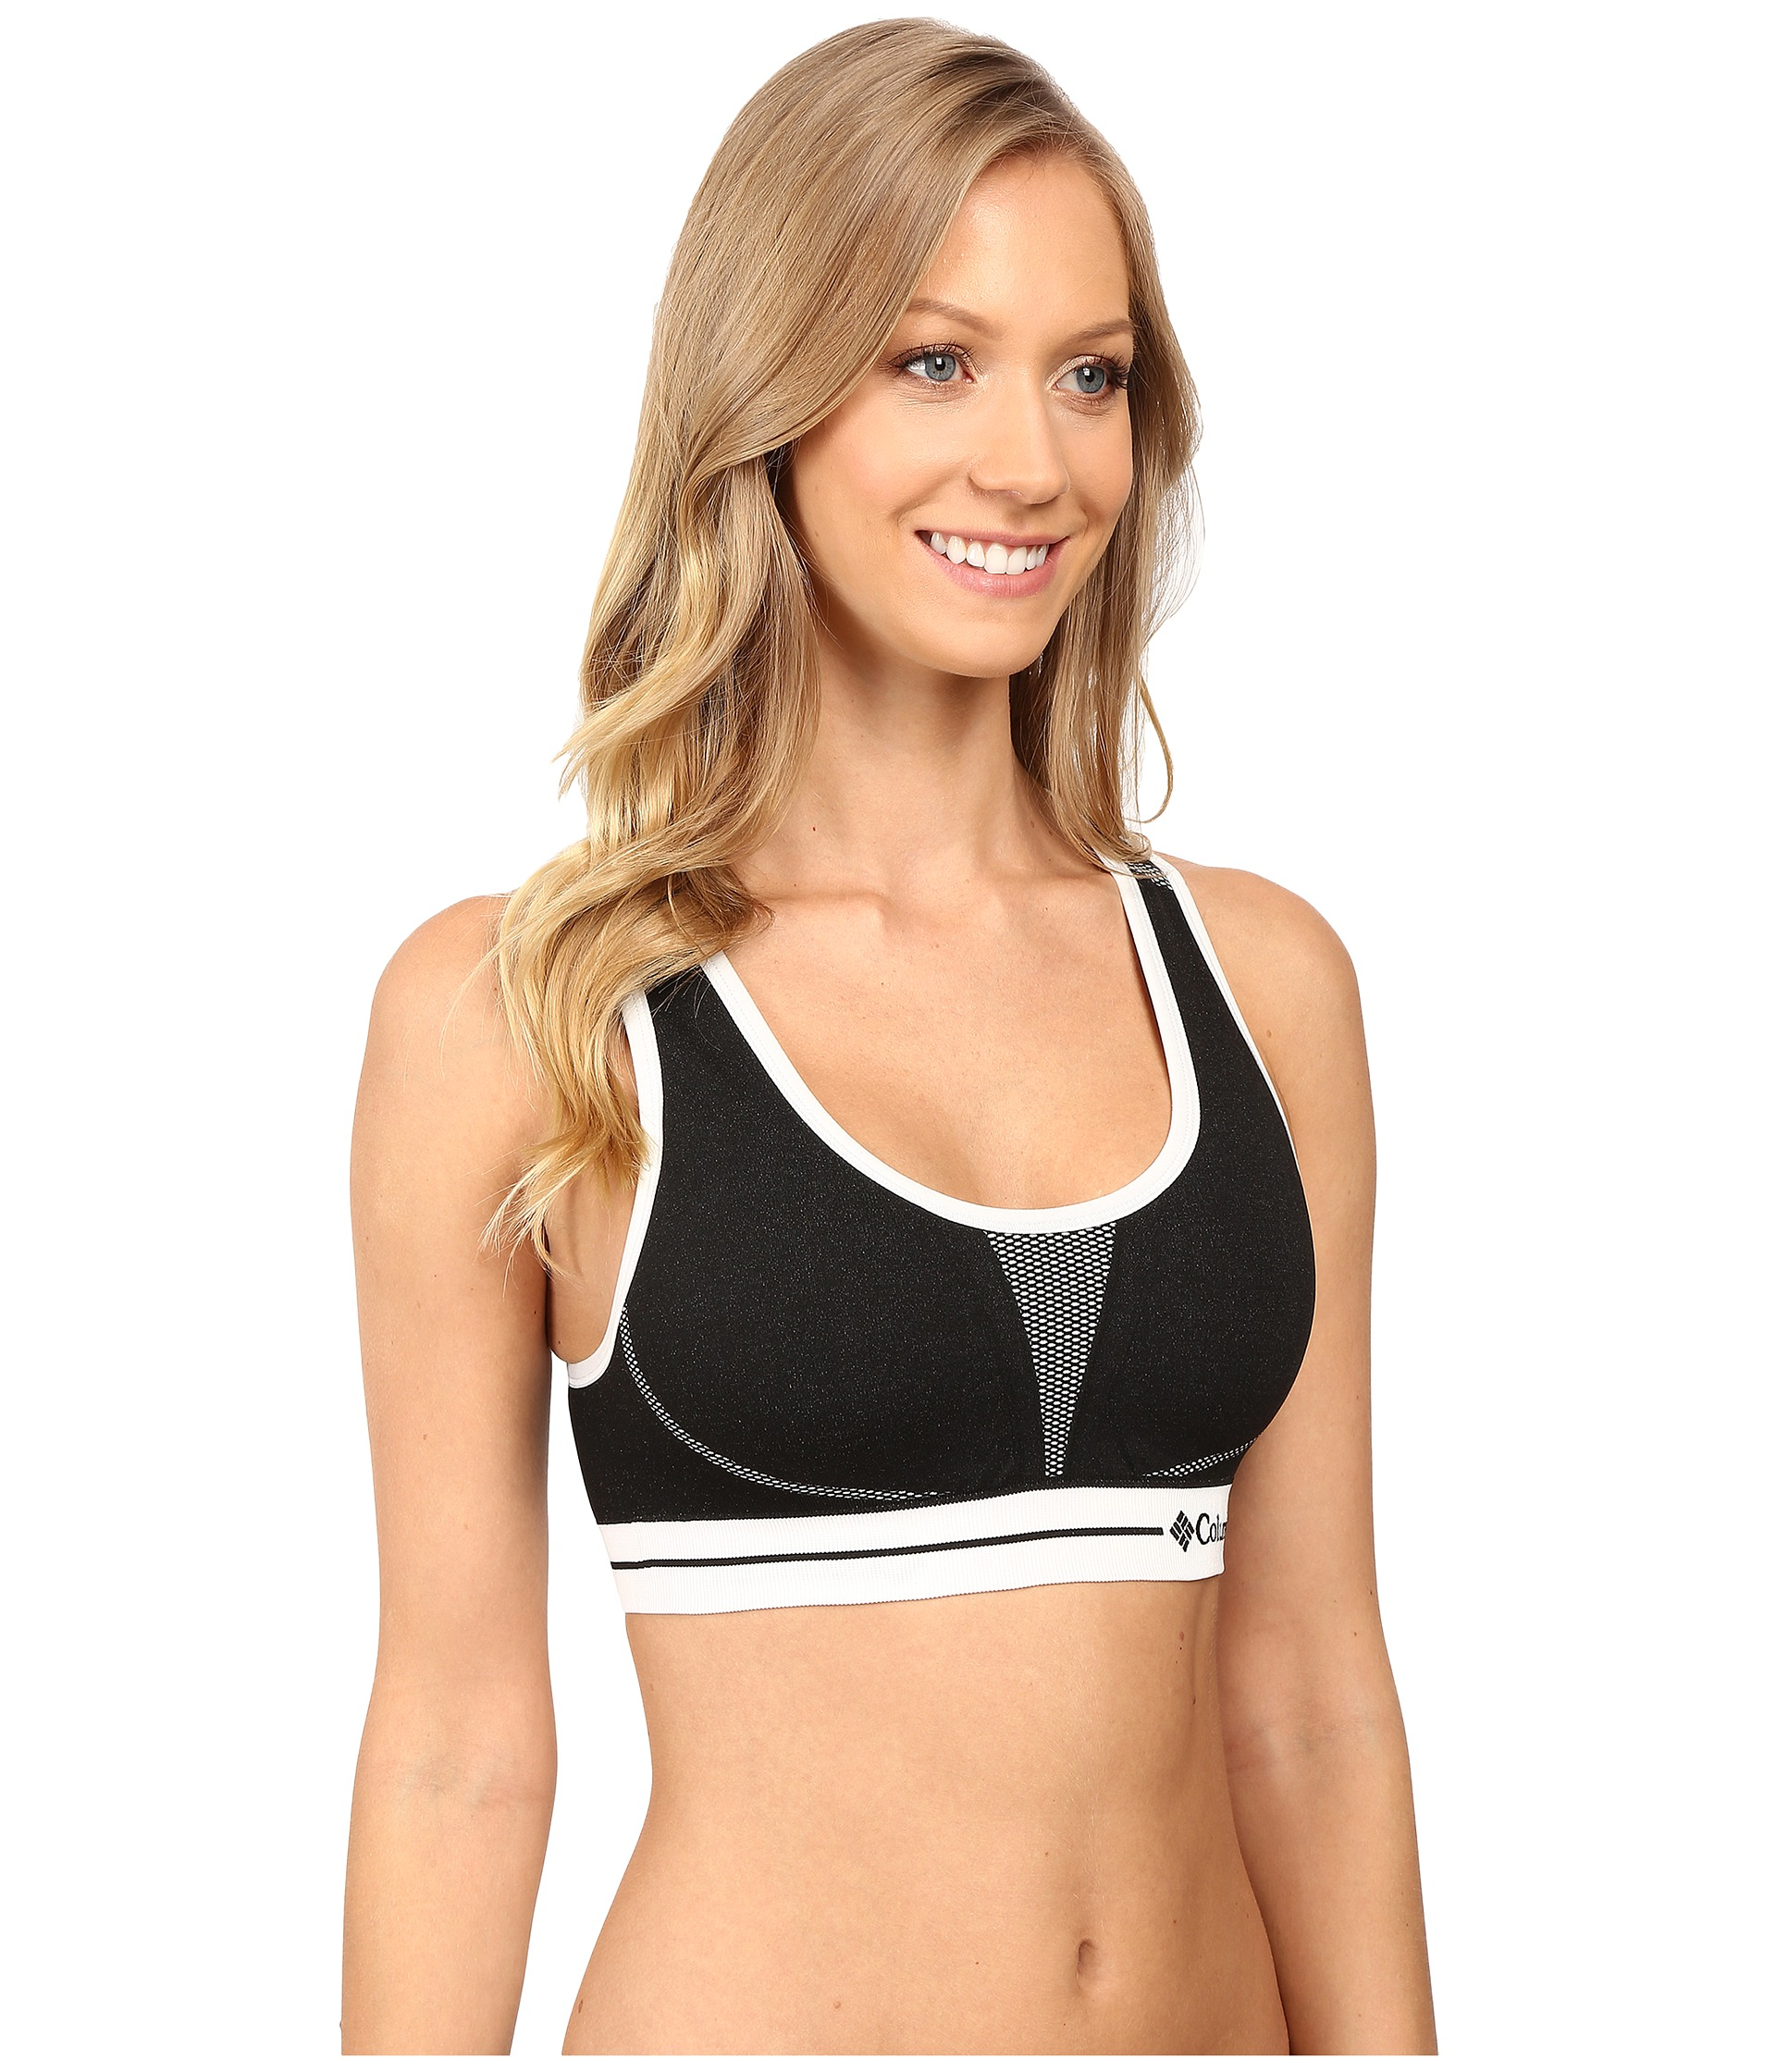 Basic, stretchy pullover sports bras and shelf bras tend to do the trick. Women with smaller cup sizes typically don't require more support than what a low-impact bra provides. Medium-impact sports such as hiking, skiing, and cycling can lead to more bouncing and discomfort without a proper sports bra.